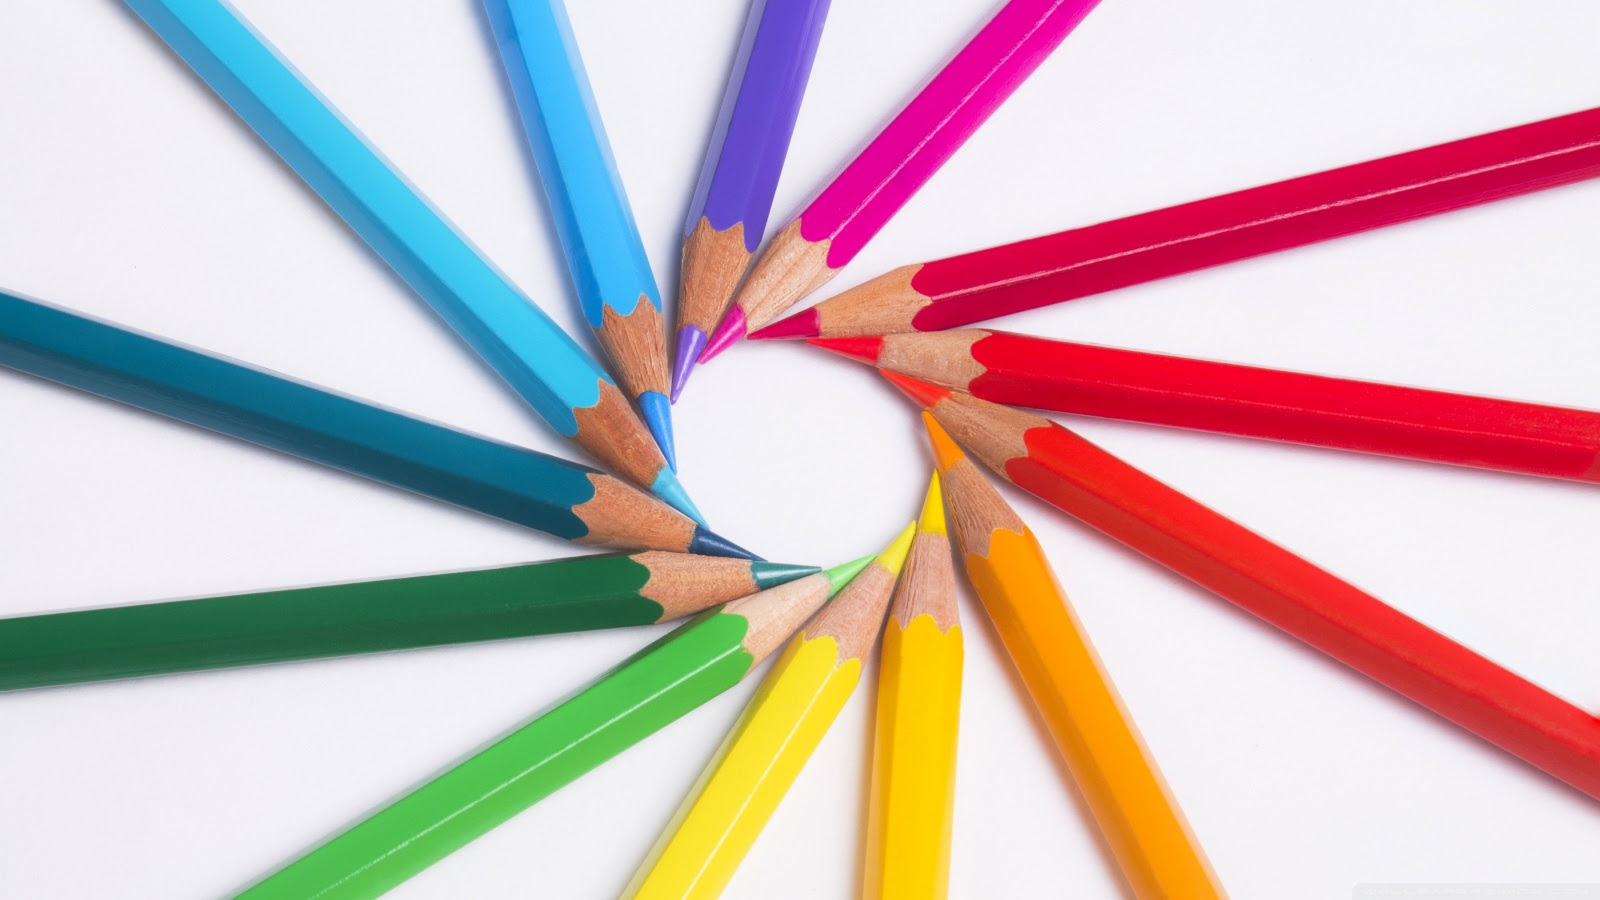 Rainbow Colored Pencils Macro ❤ 4K HD Desktop Wallpaper for 4K